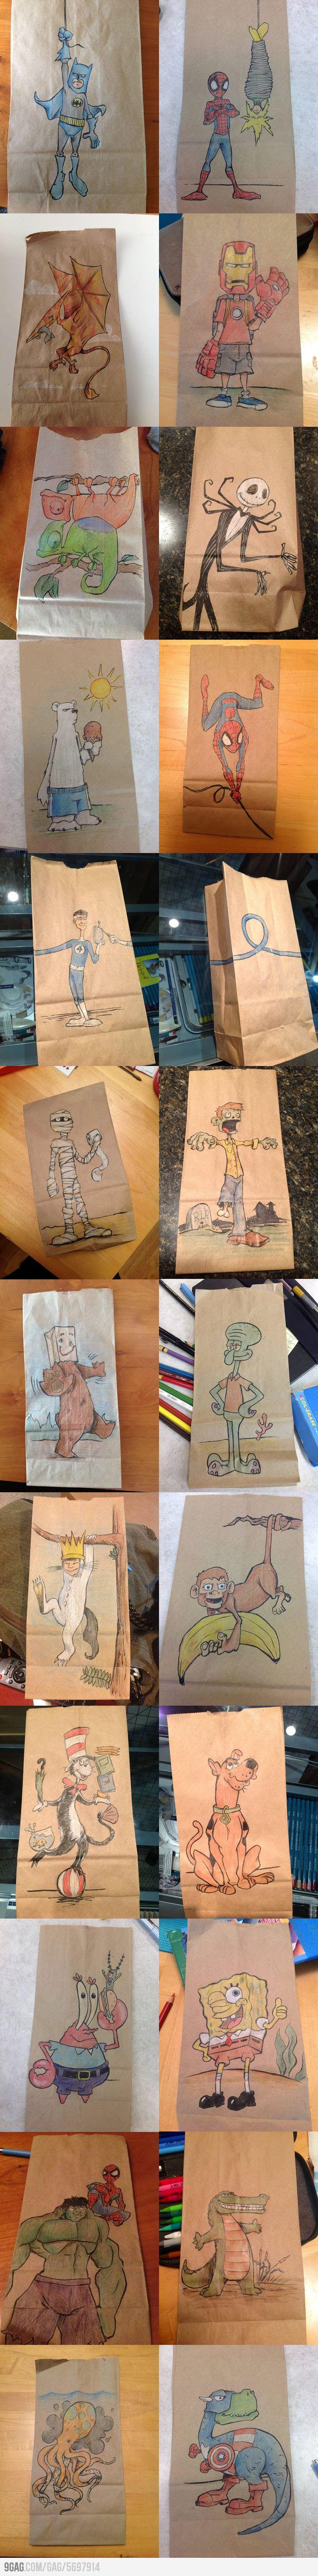 9GAG - Lunch bag drawings from a father